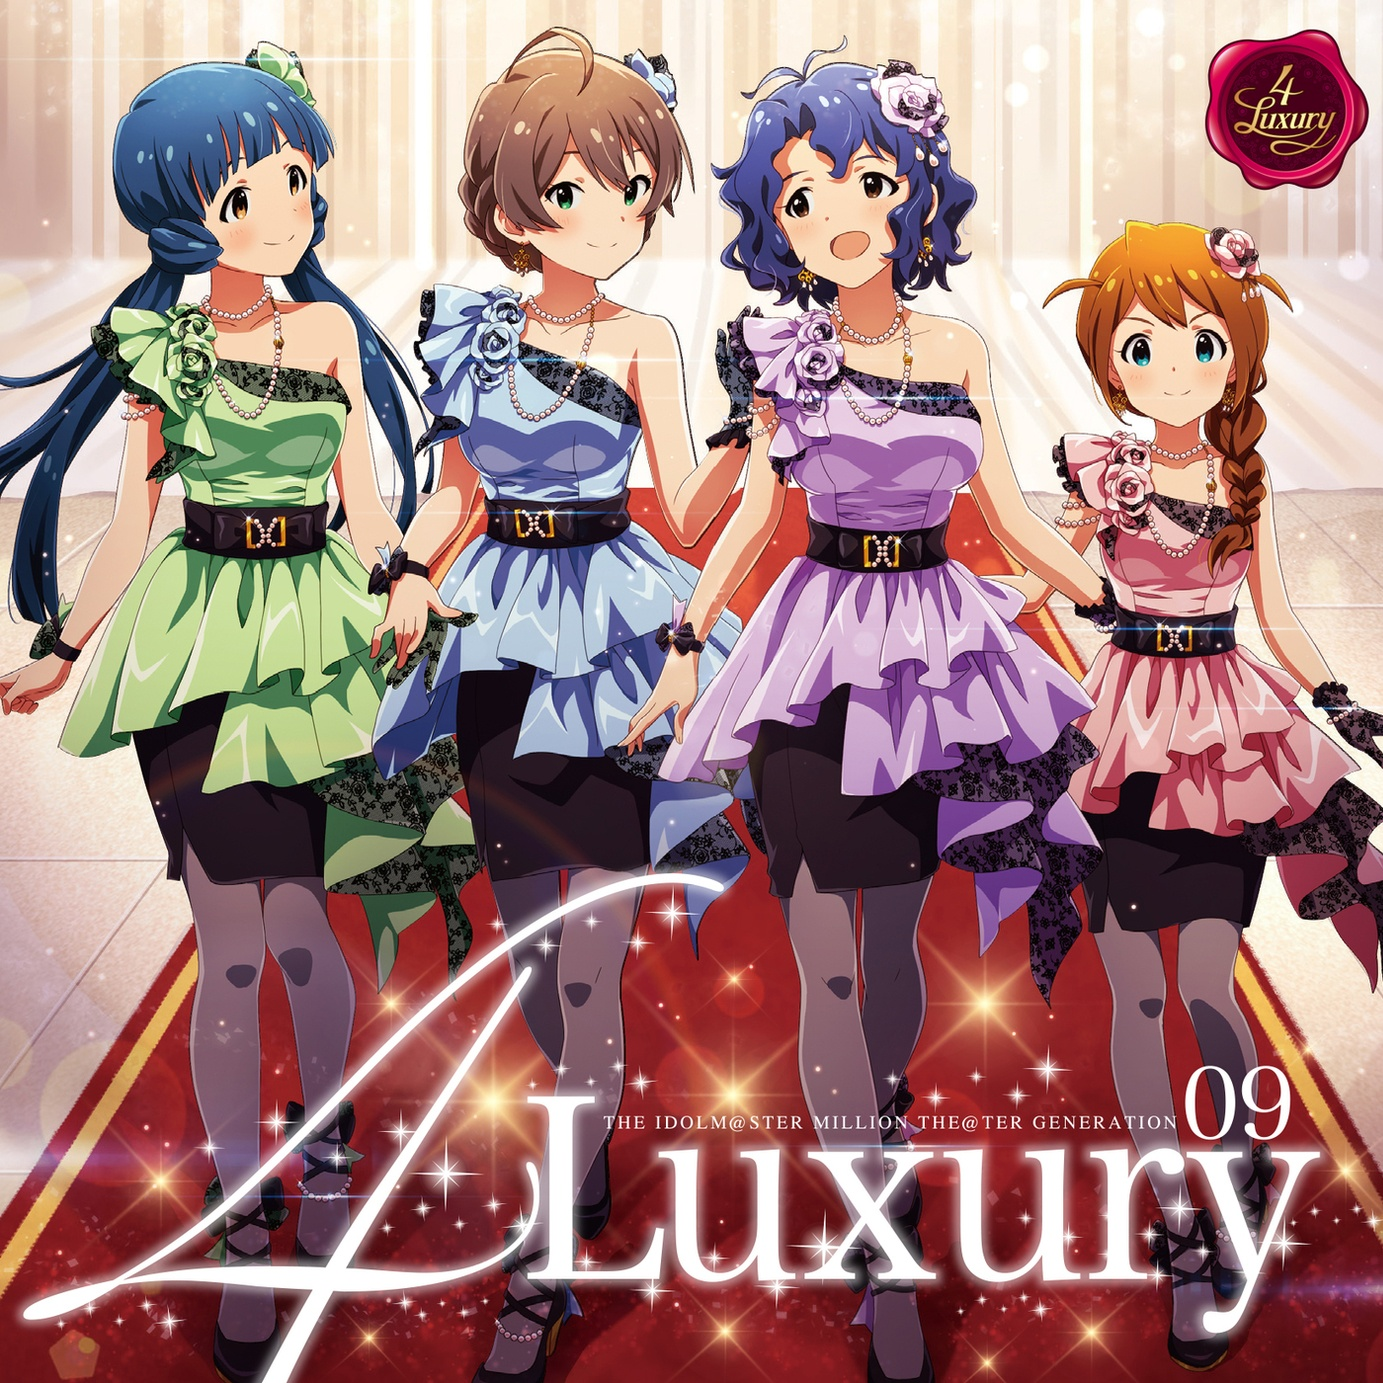 THE IDOLM@STER MILLION THE@TER GENERATION 09 4Luxury